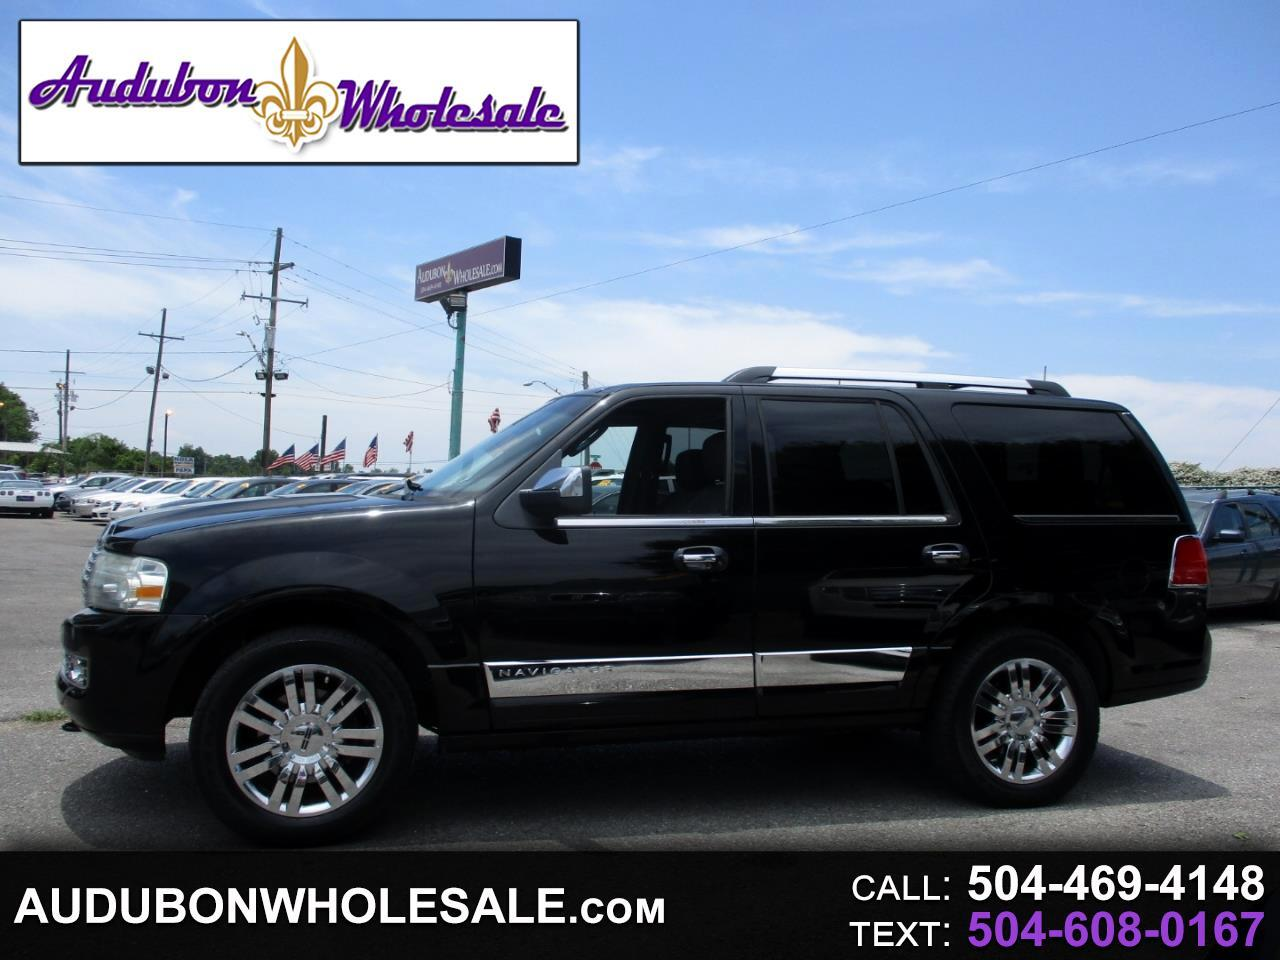 2007 Lincoln Navigator 2WD Luxury